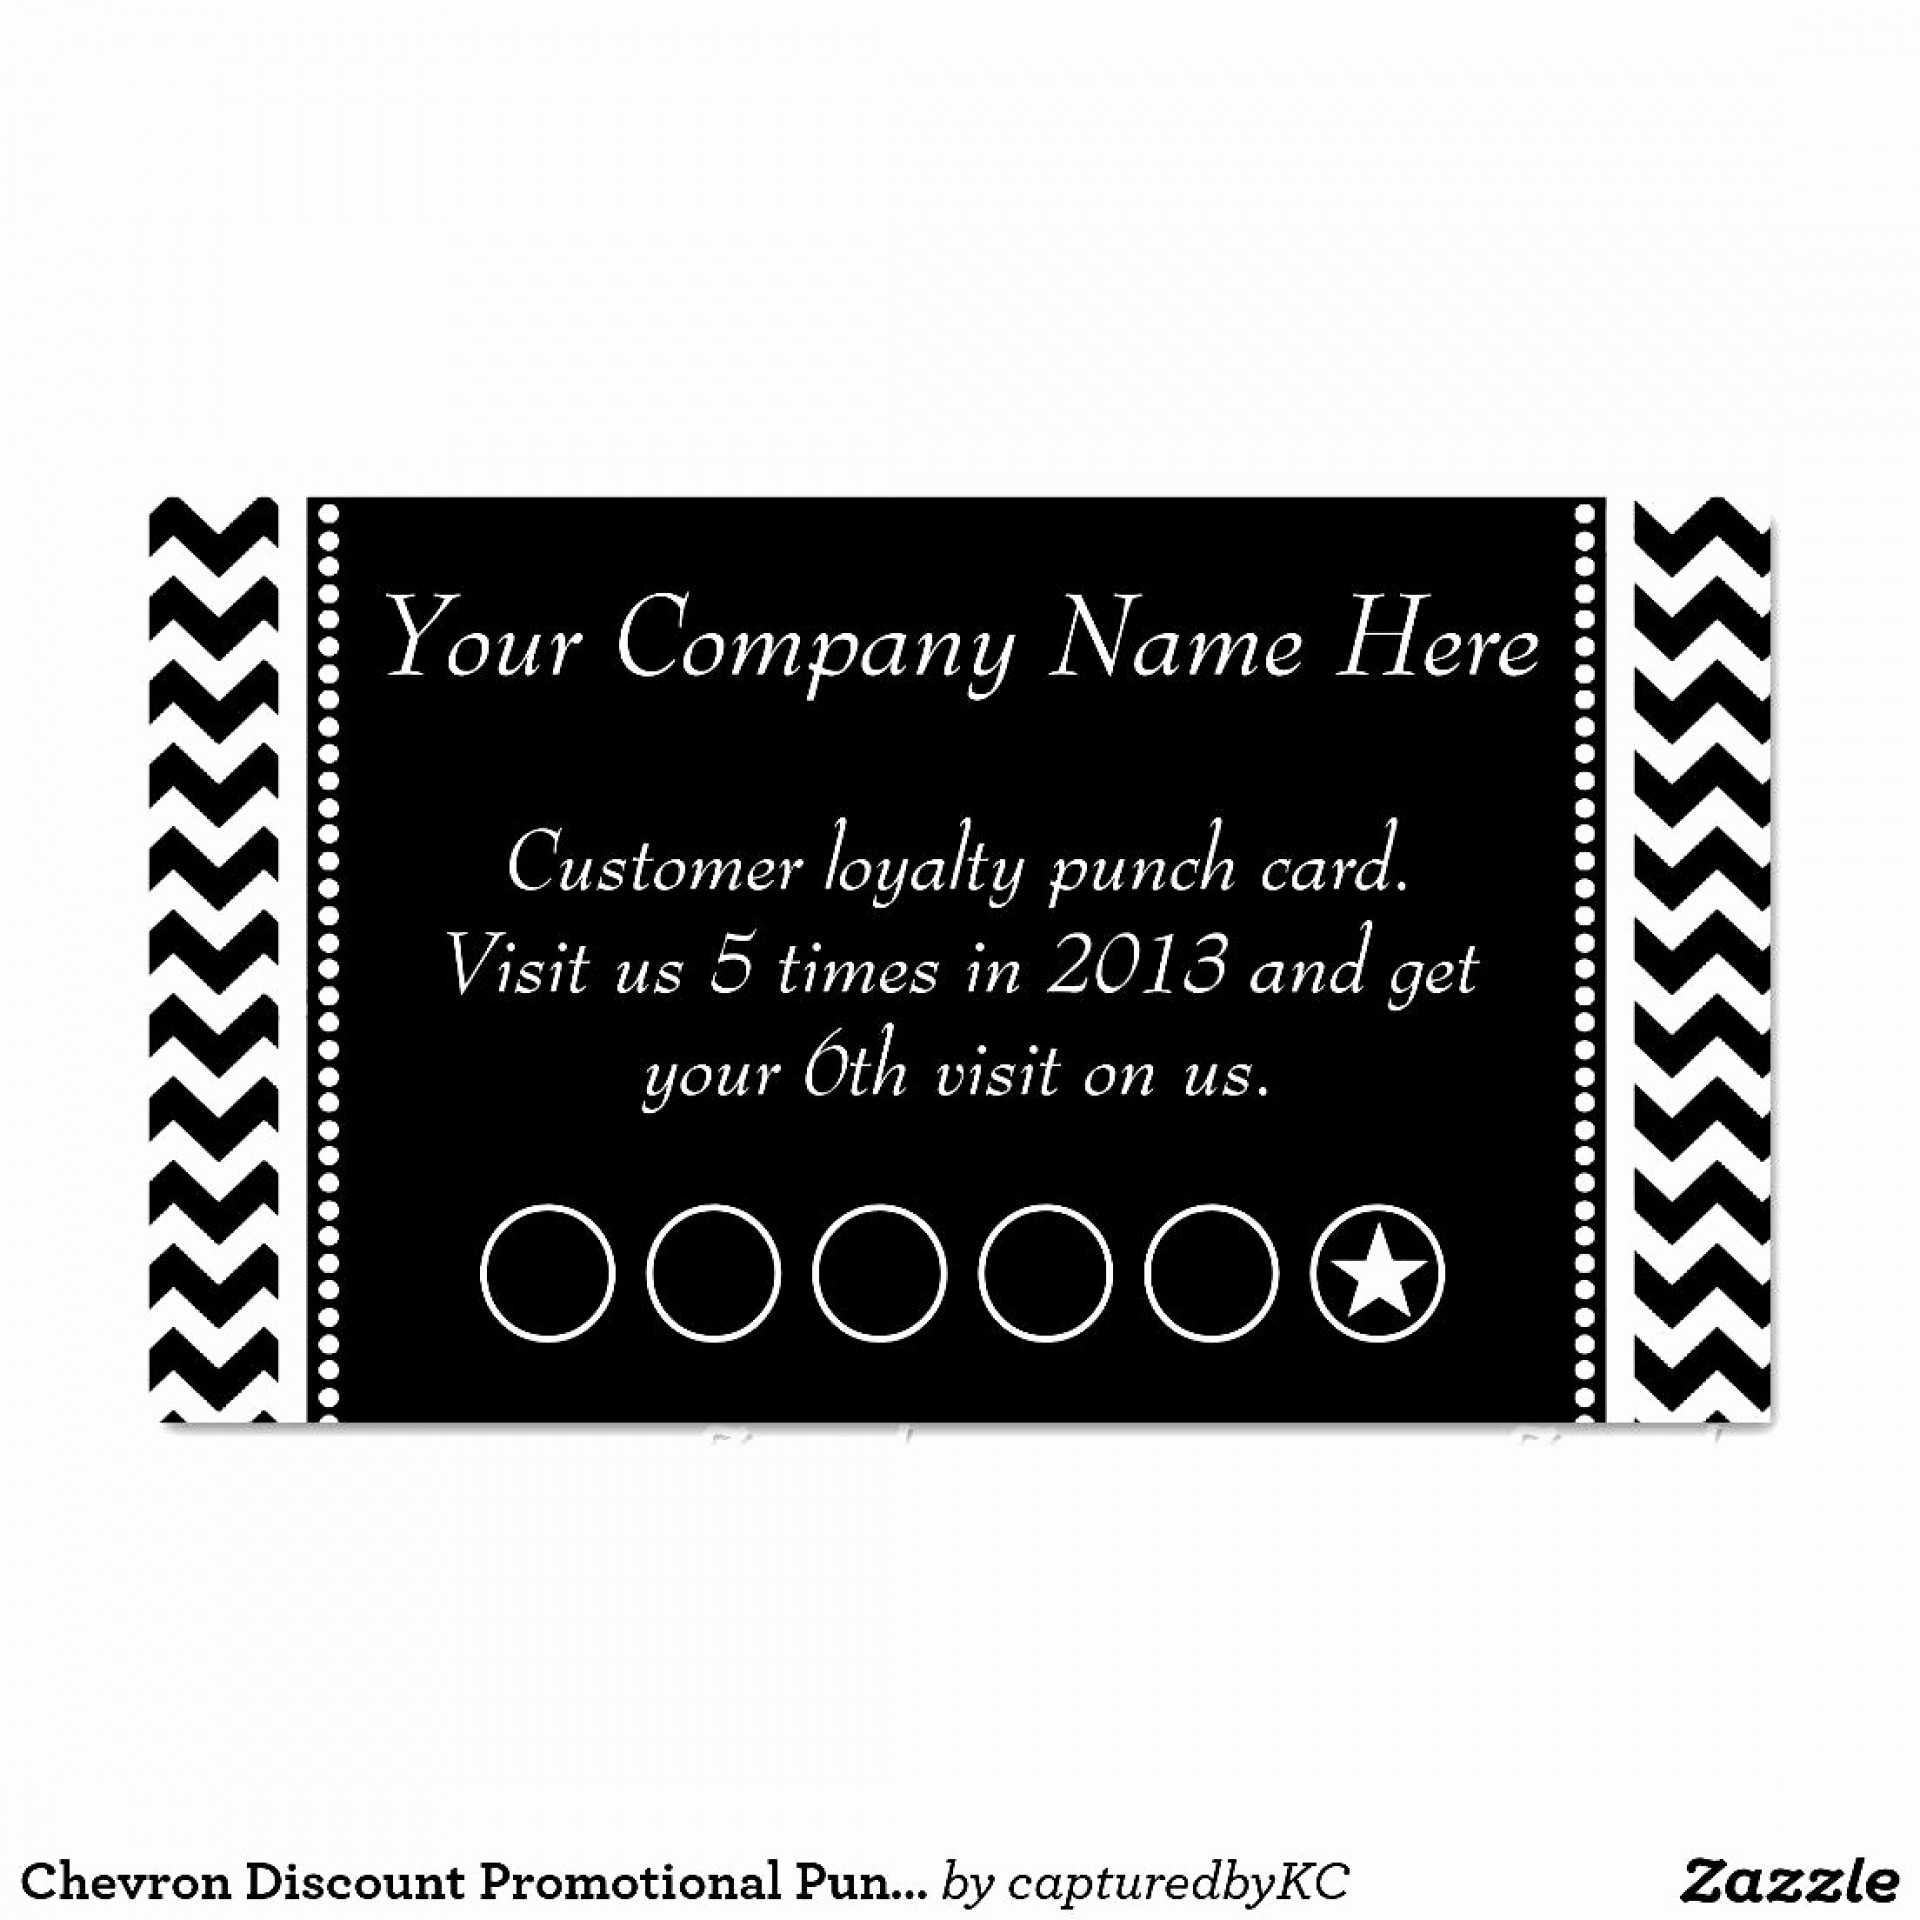 004 Free Printable Chore Punch Card Template Business And With Business Punch Card Template Free